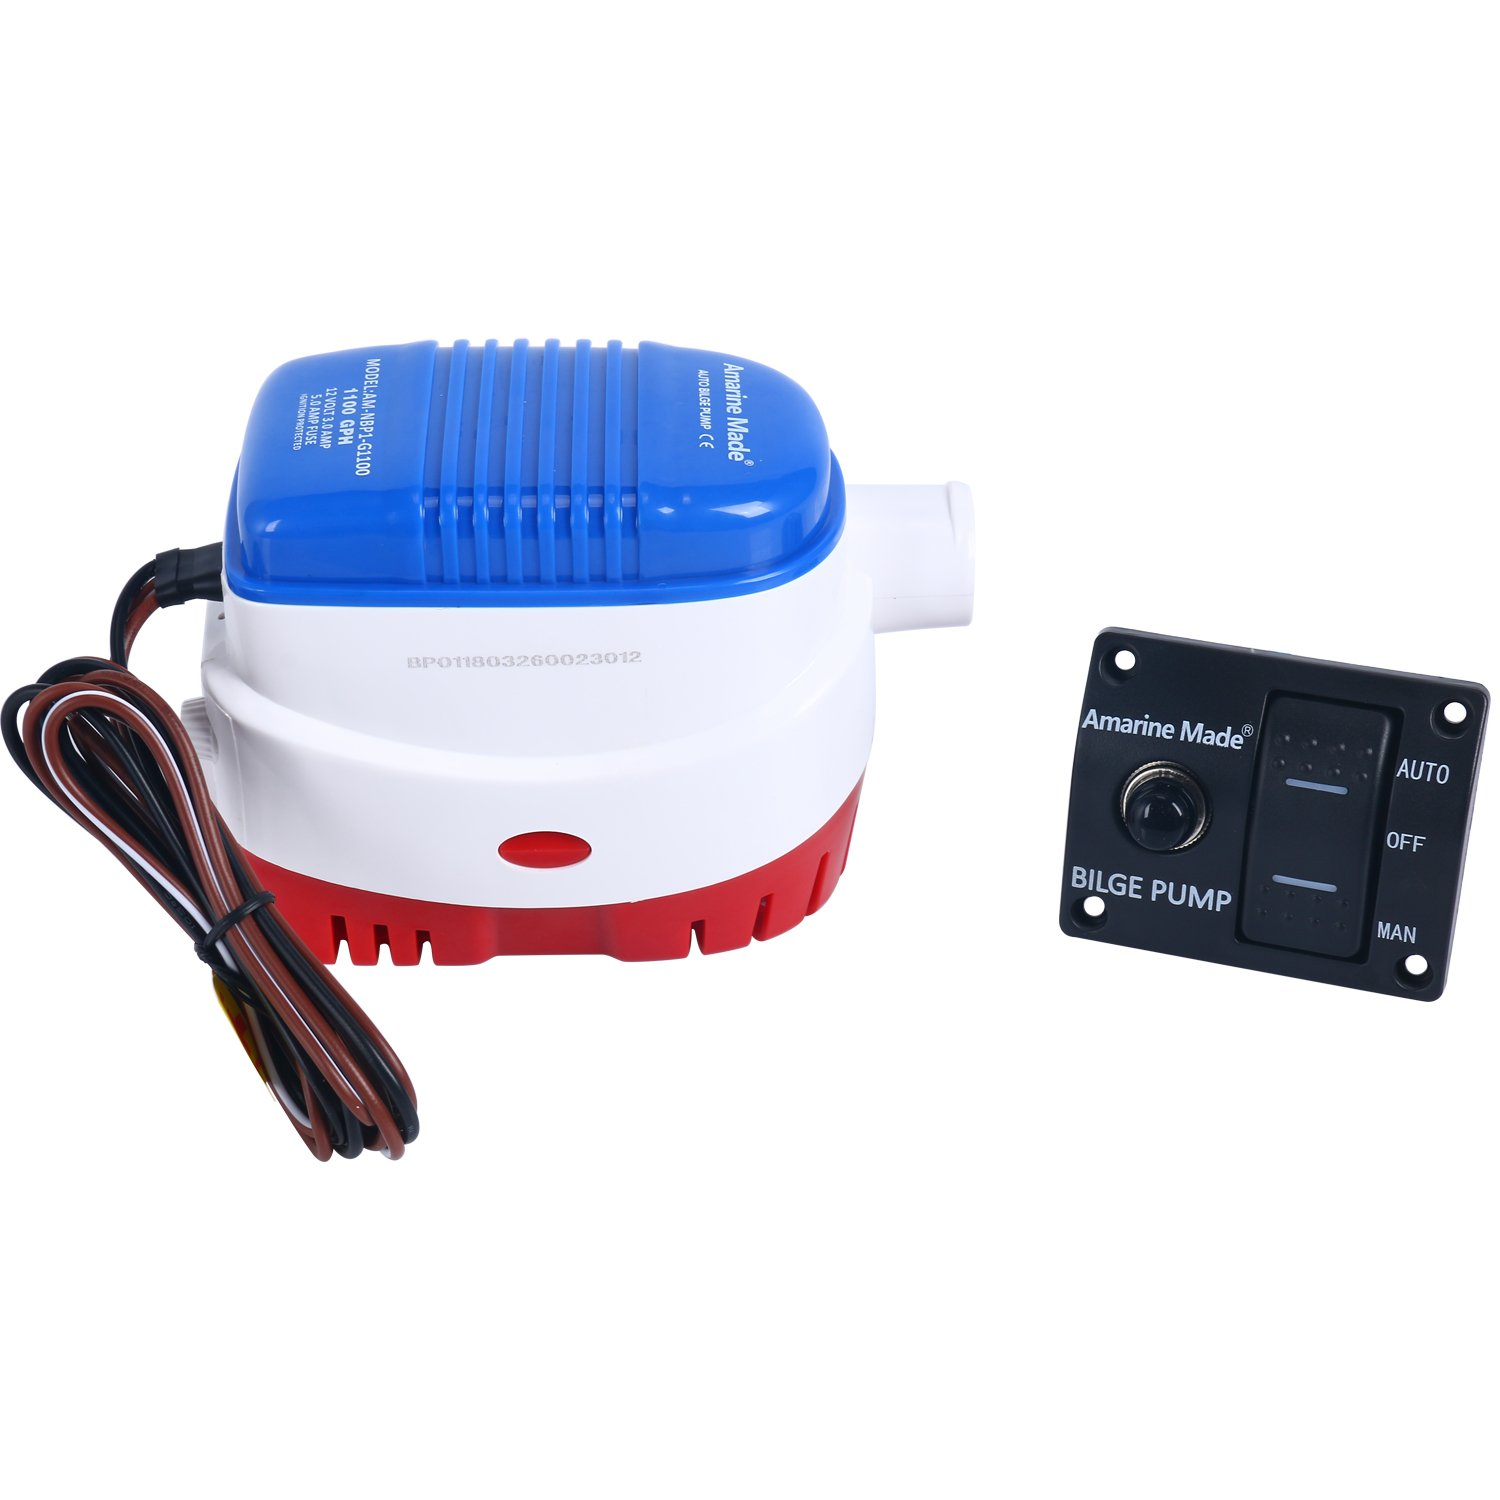 Amarine Made 12v 1100gph Automatic Submersible Boat Home Water Pumps Fuse Box Bilge Pump And Auto Off Man Led Rocker Switch Panel Circuit Breaker